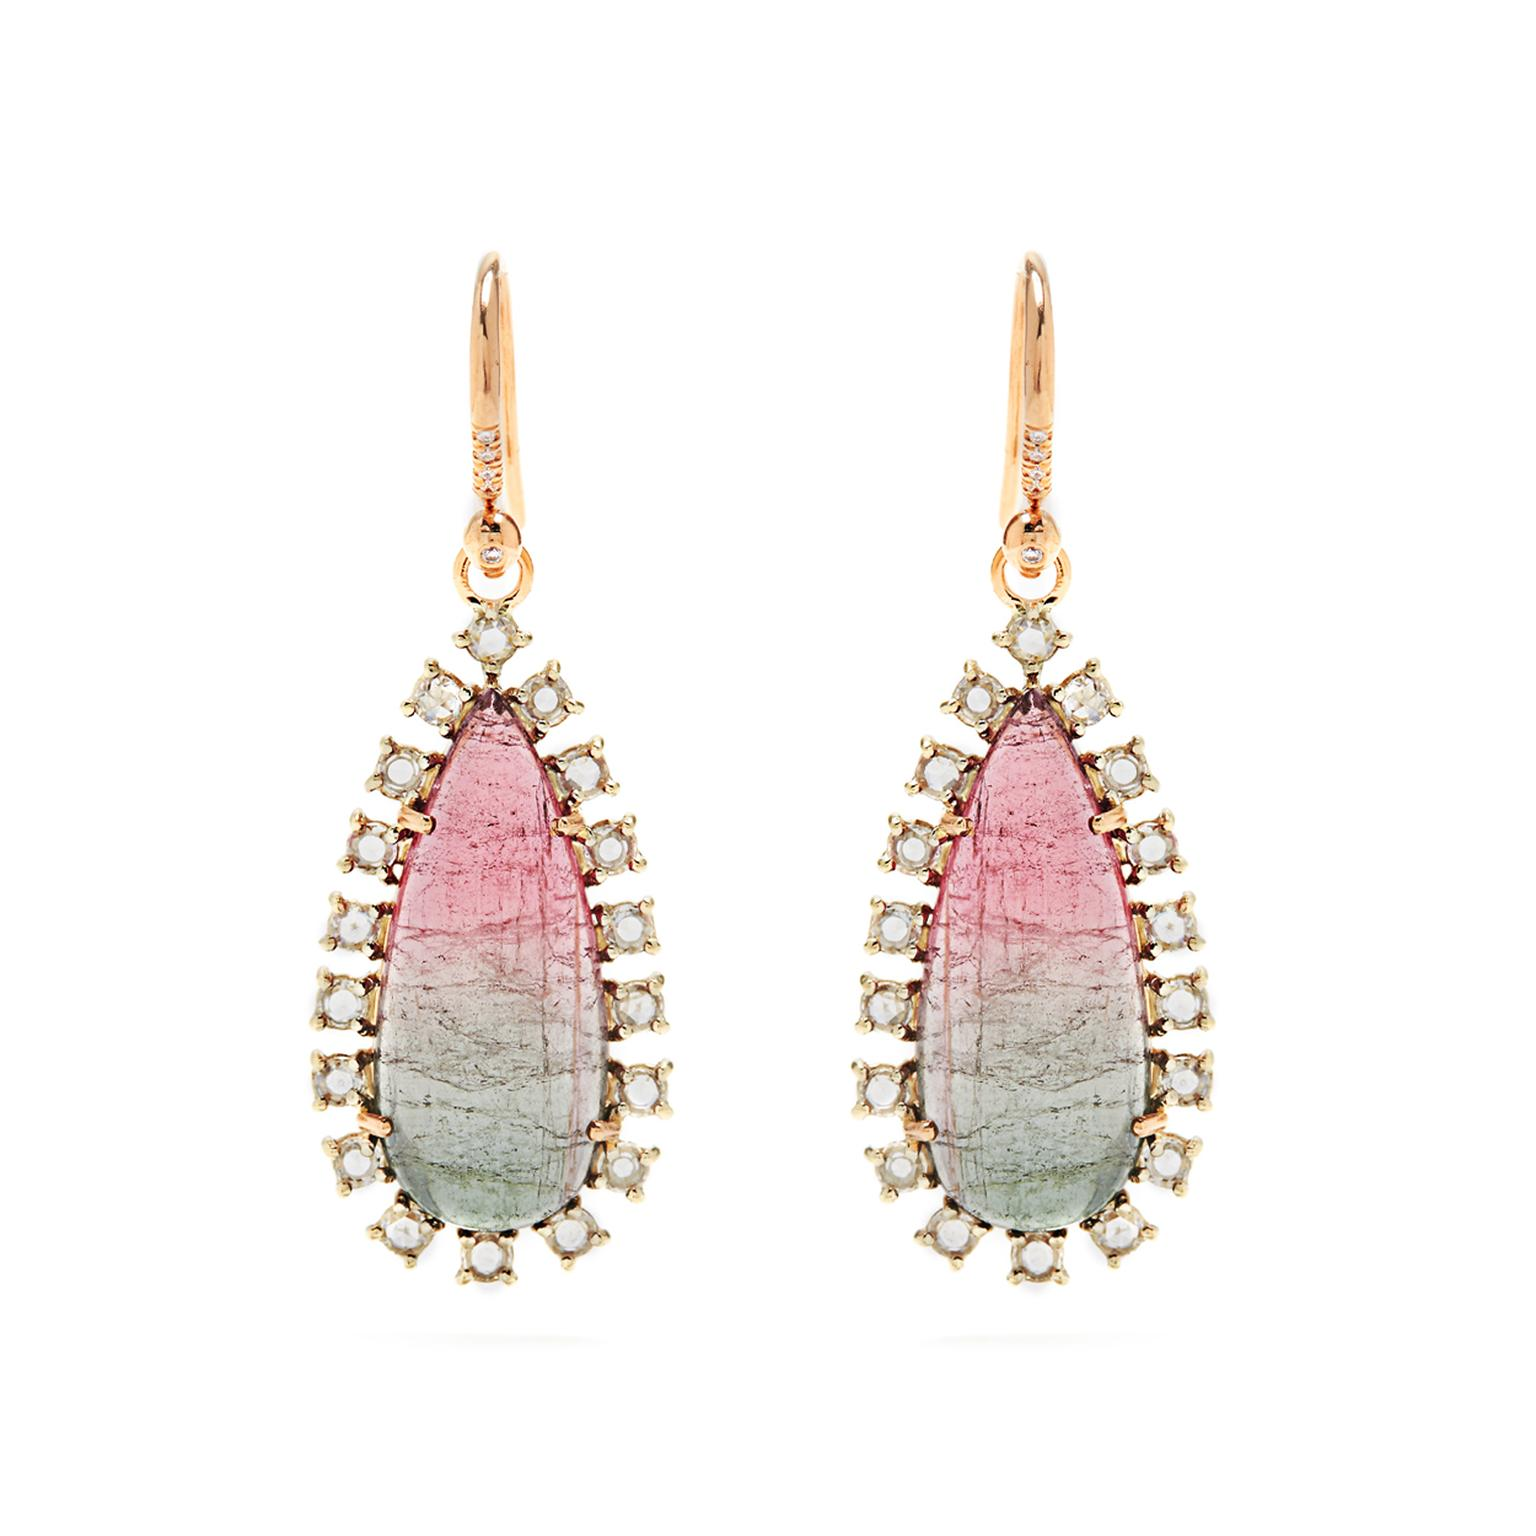 Irene Neuwirth watermelon tourmaline earrings with rose-cut diamonds